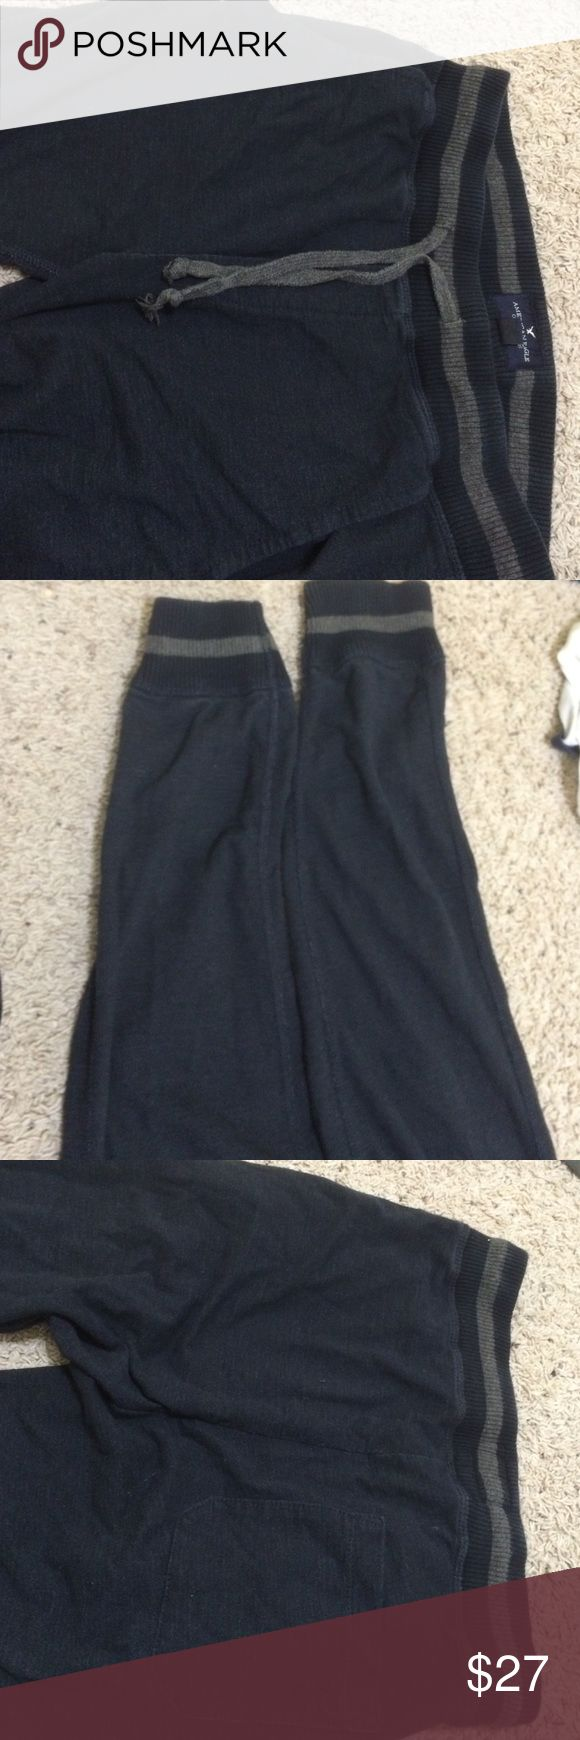 Mens fleece joggers Like new condition. Just try on one American Eagle Outfitters Pants Sweatpants & Joggers